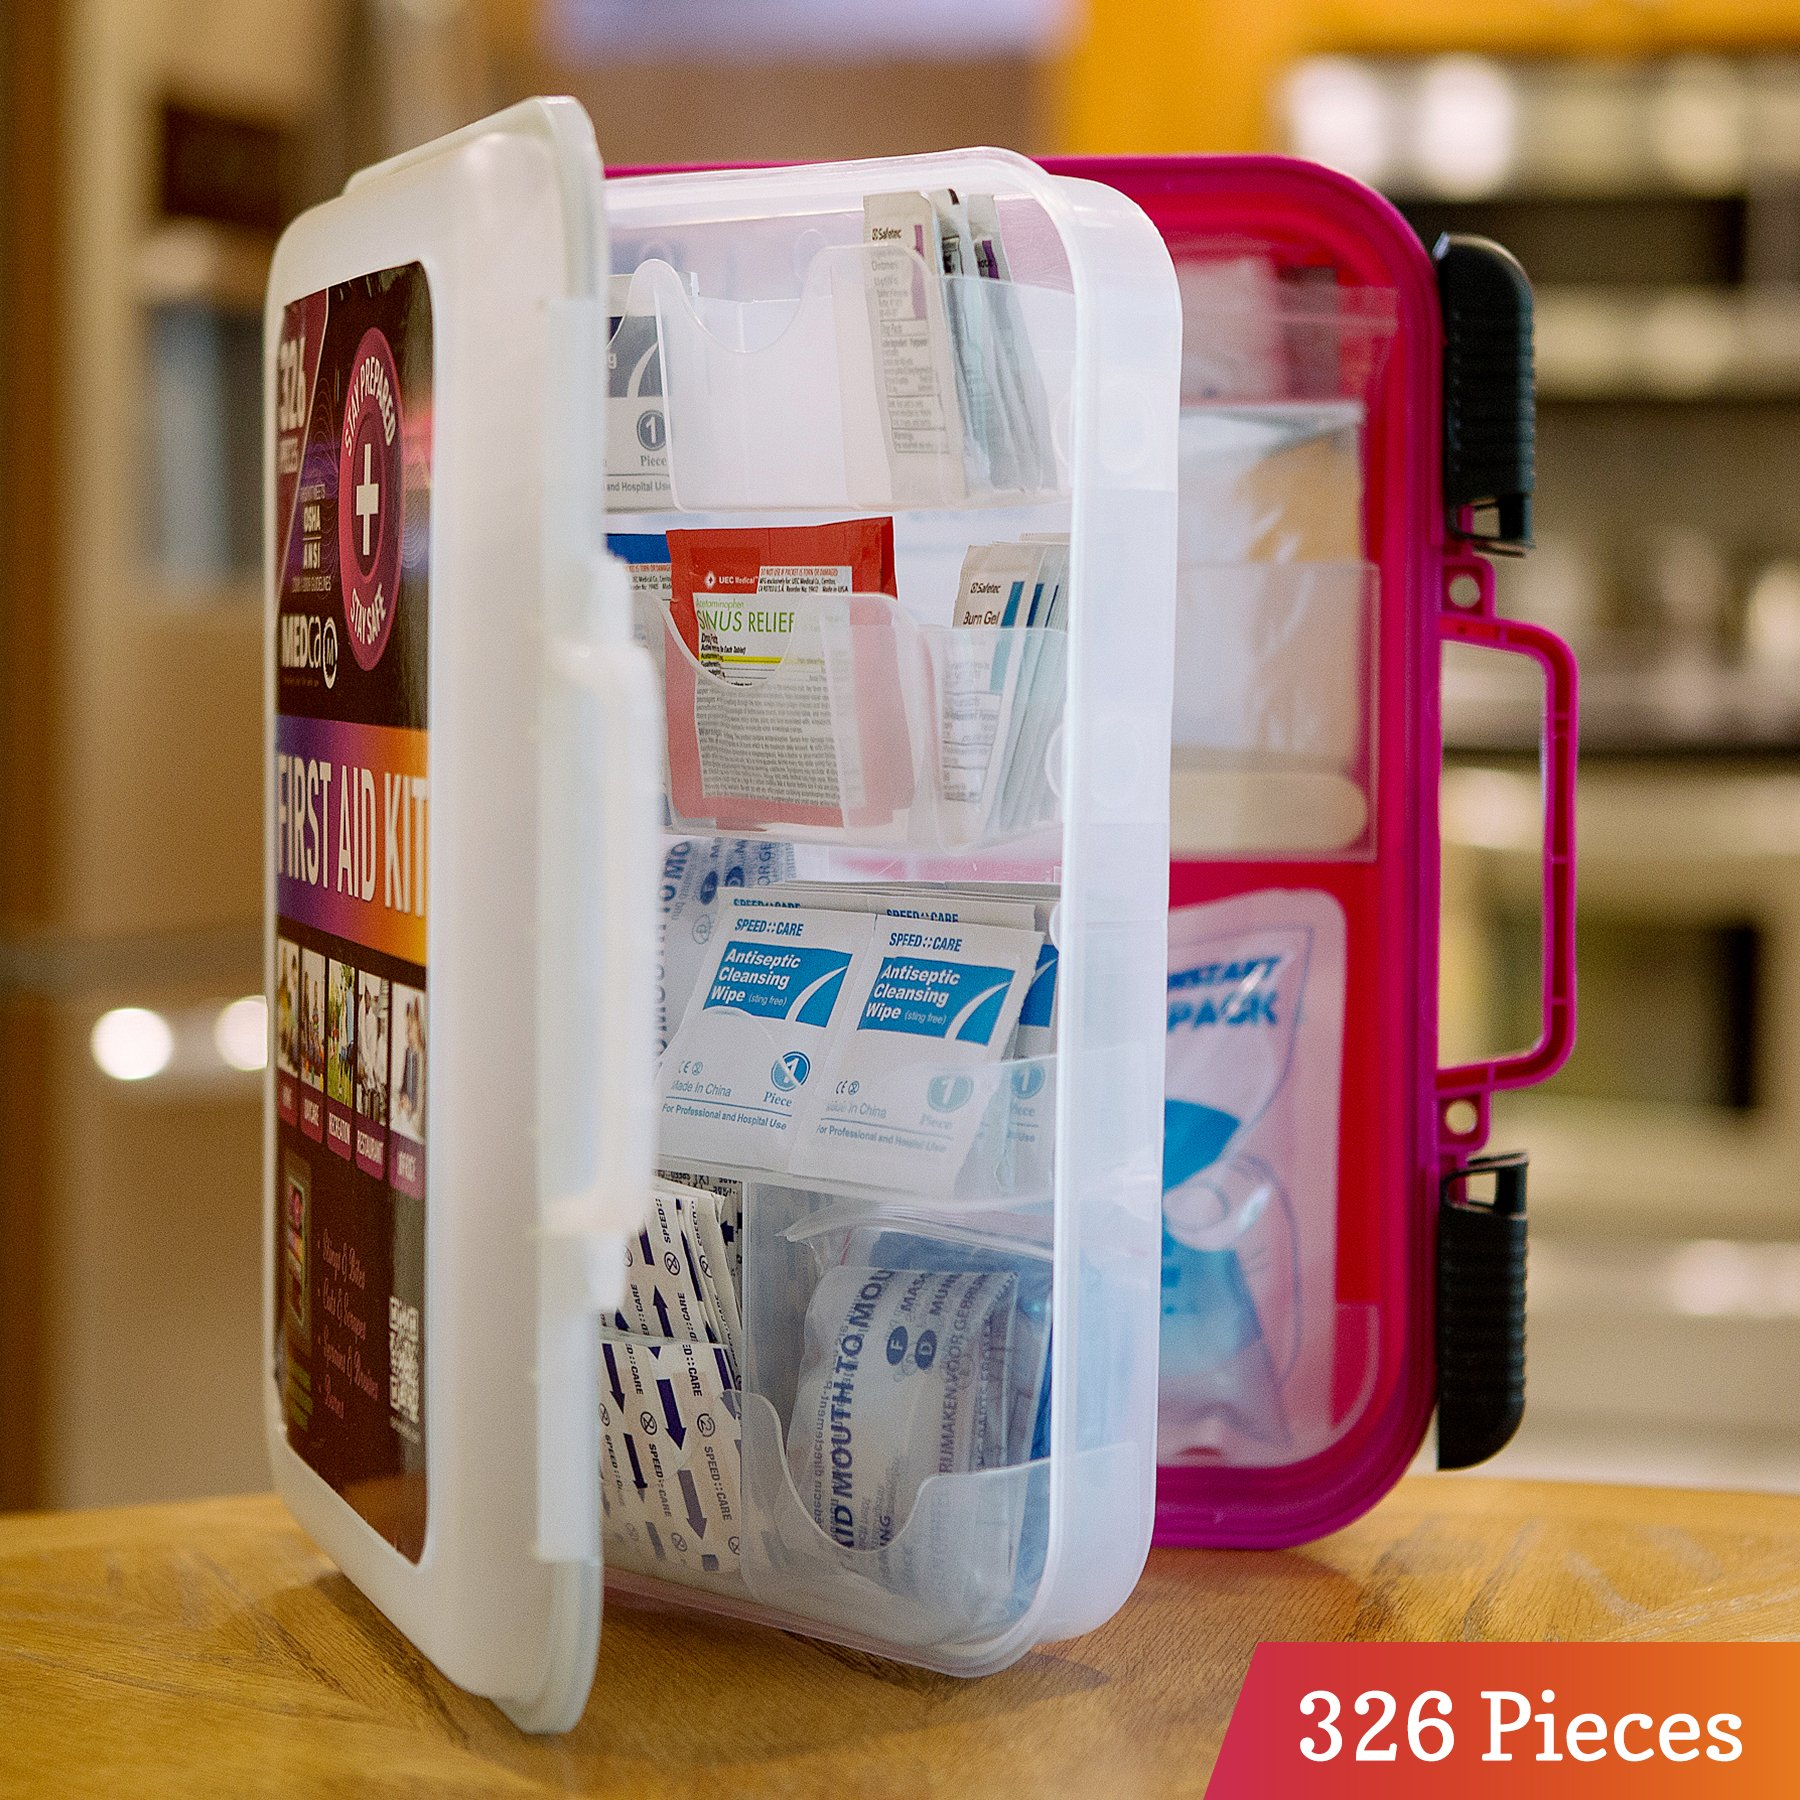 First Aid Kit - Emergency First Aid Kit and Medical Kit Exceeds ANSI Z308.1-2009 OSHA Standards, Hard Case, Wall Mount & Glows in The Dark for Offices, Home, Schools, Daycare, Construction Sites by MEDca (Image #4)